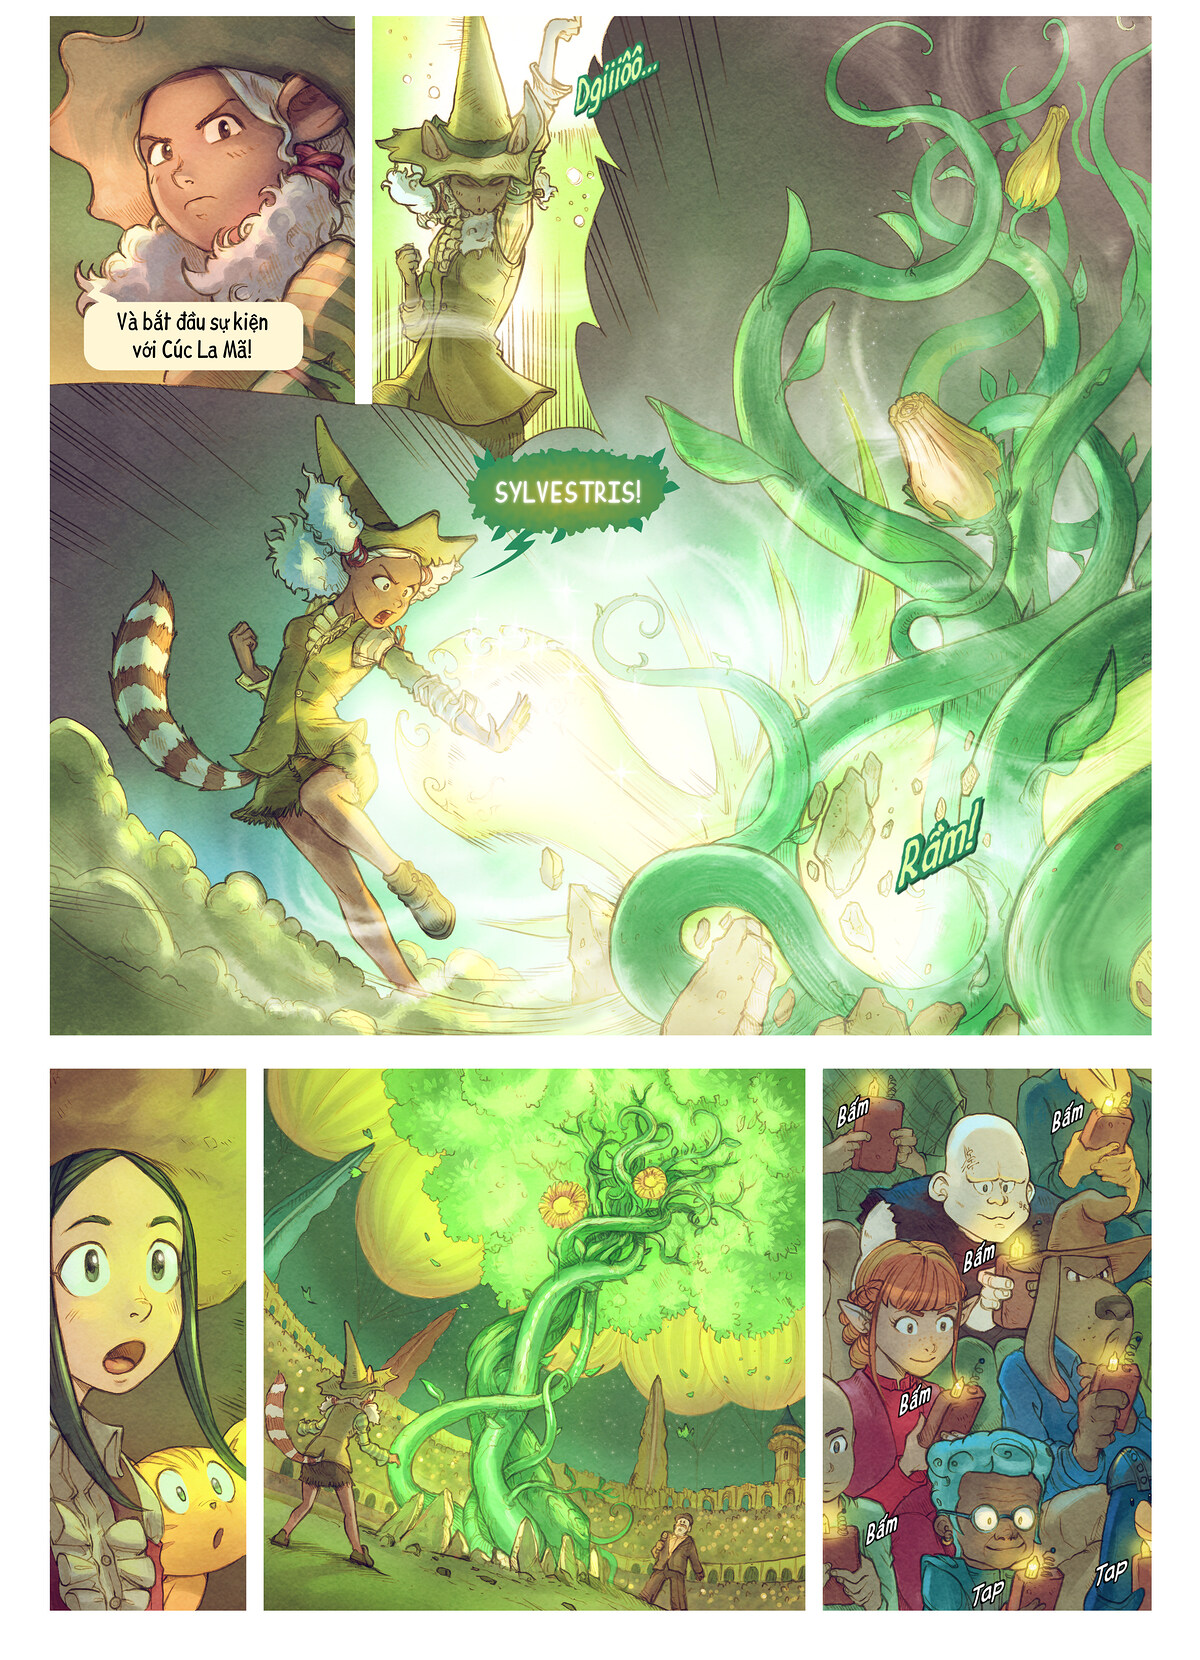 A webcomic page of Pepper&Carrot, Tập 22 [vi], trang 5